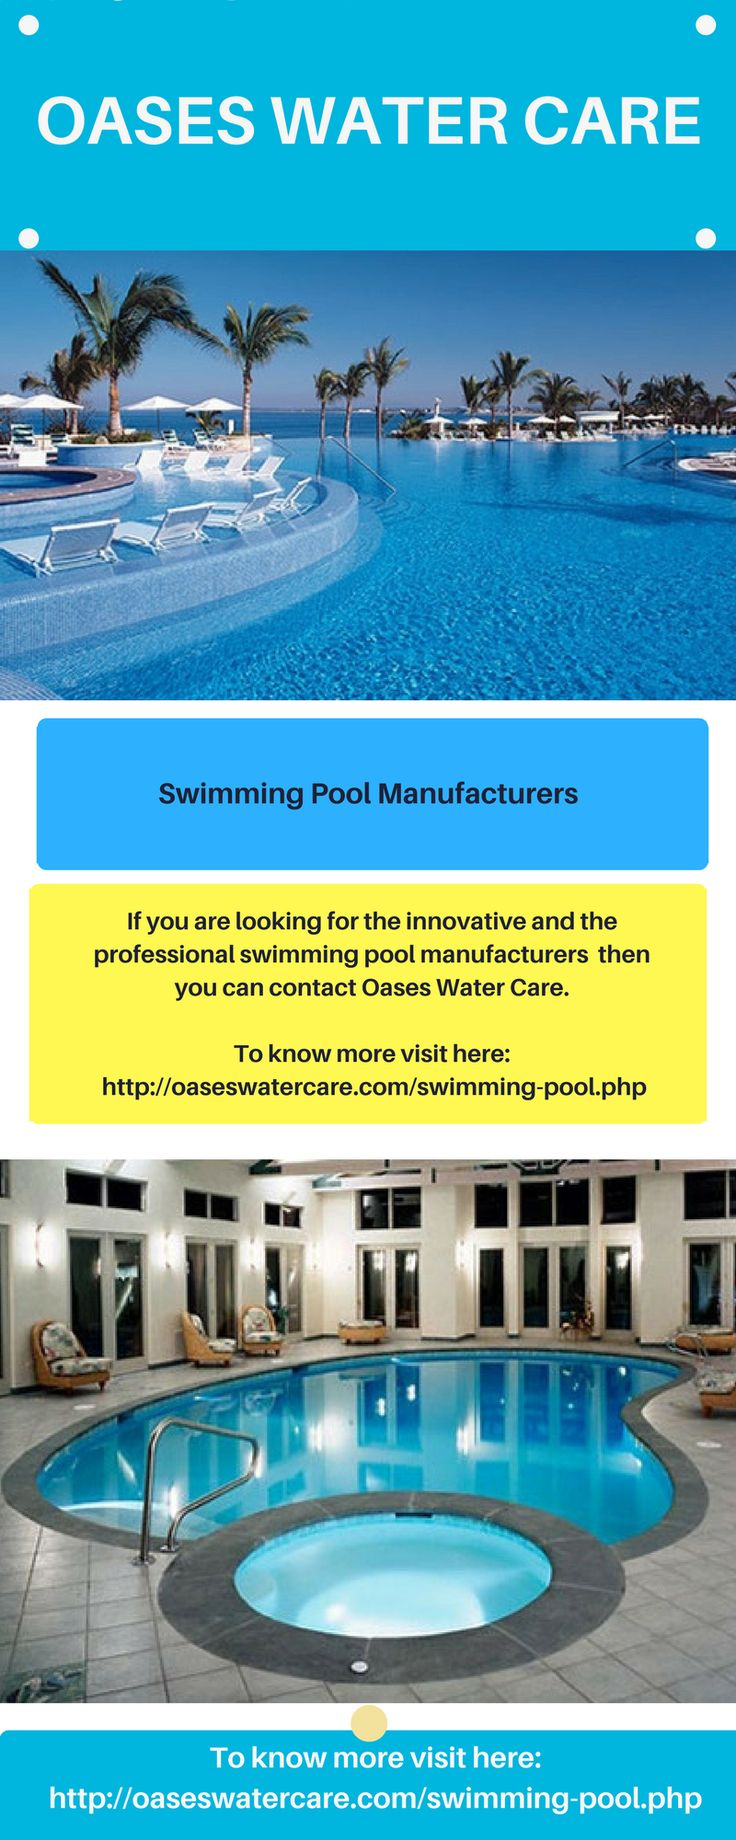 If you are looking for the innovative and the professional swimming pool manufacturers then you can contact Oases Water Care. They use the modern design and newest technology for the construction of the pools. They offer services at the reasonable price. They use the high-quality raw materials in installing pools.